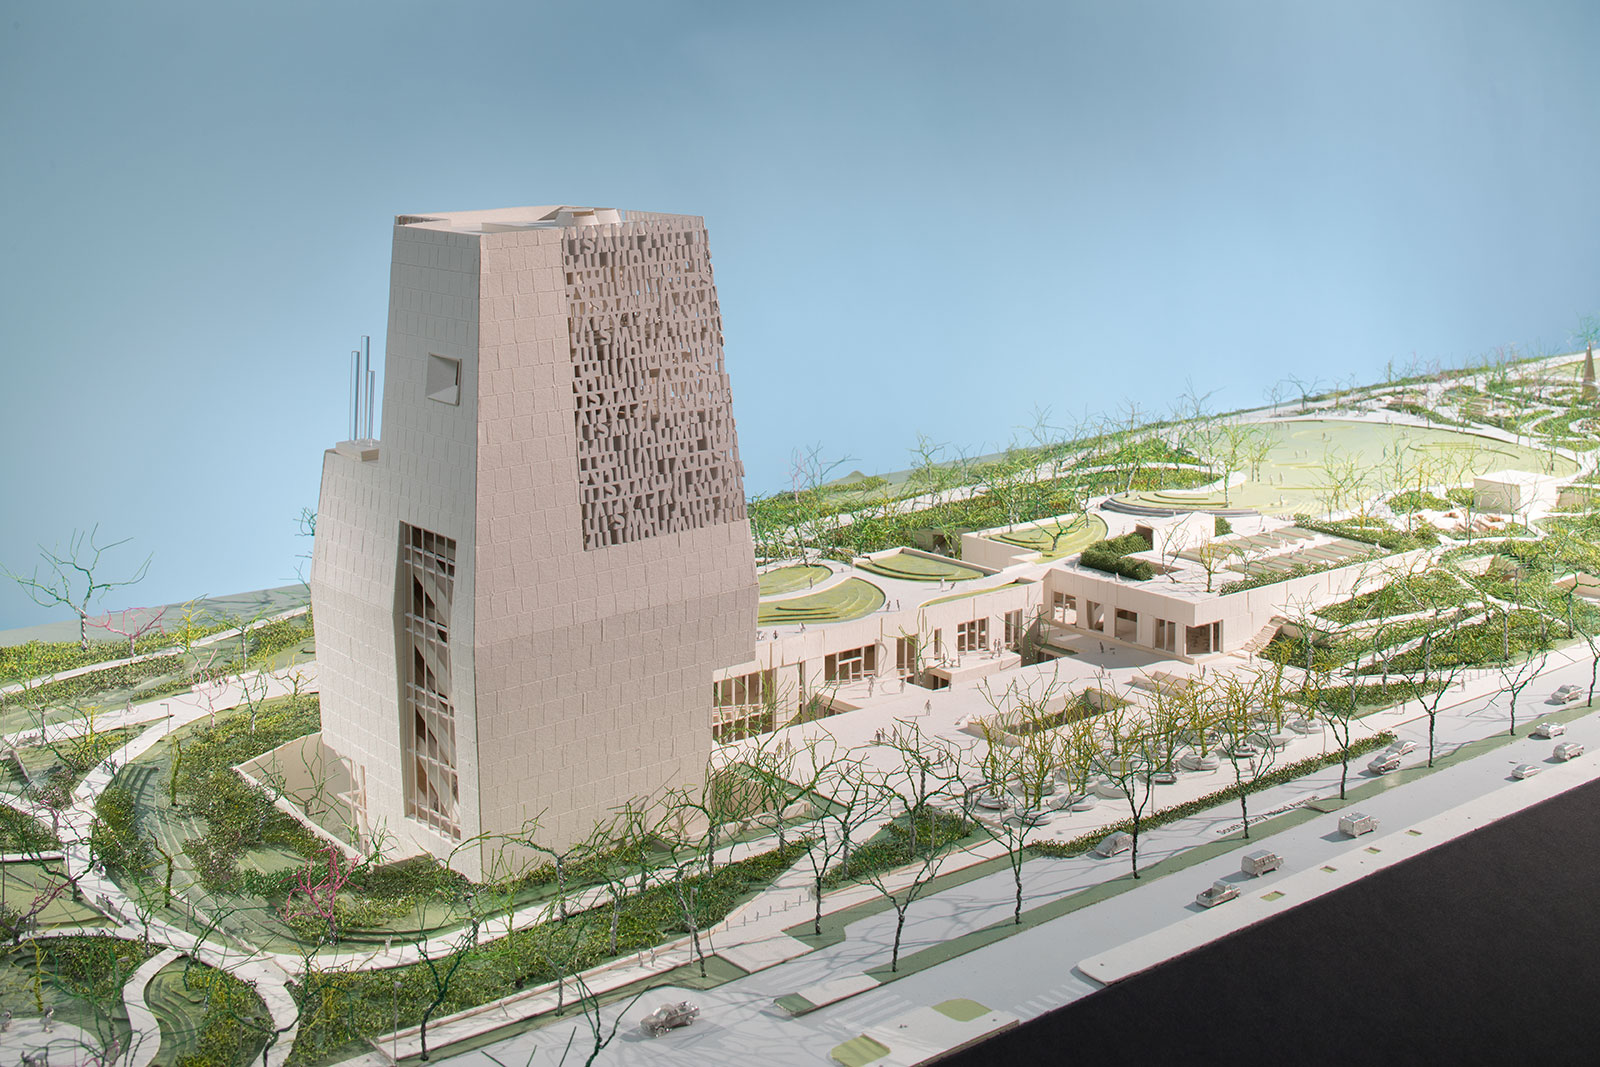 Everything you need to know about the Obama Presidential Center